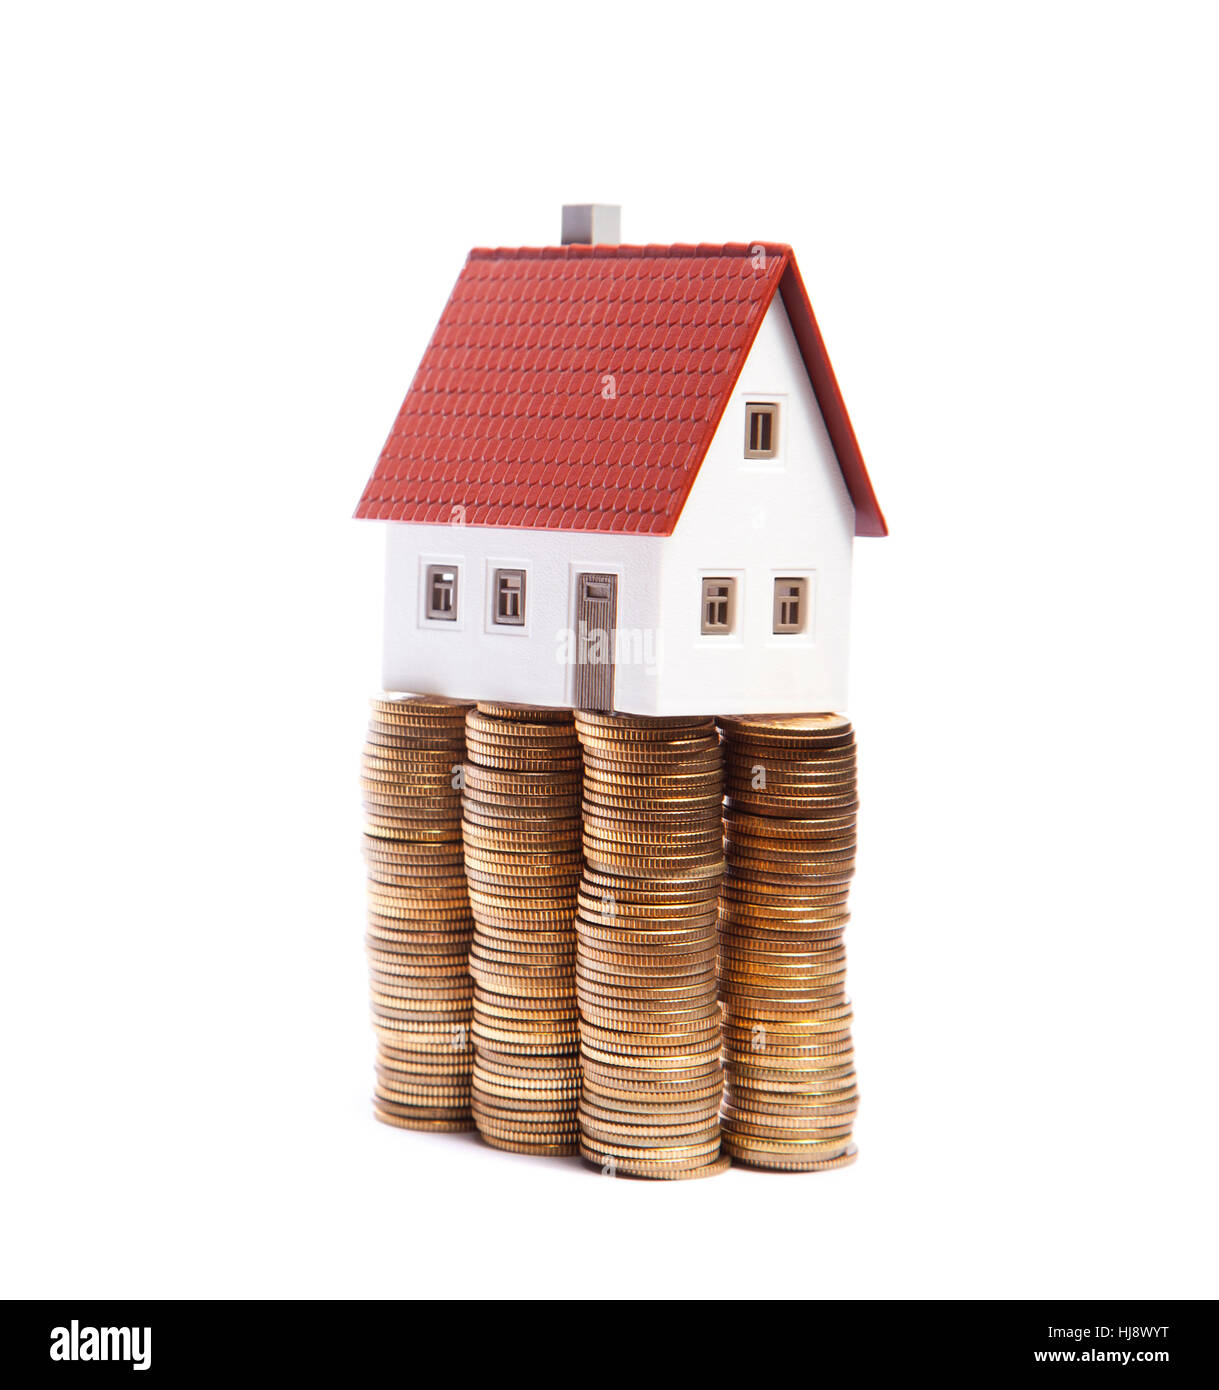 House miniature on stacks of golden coins on white background - Stock Image